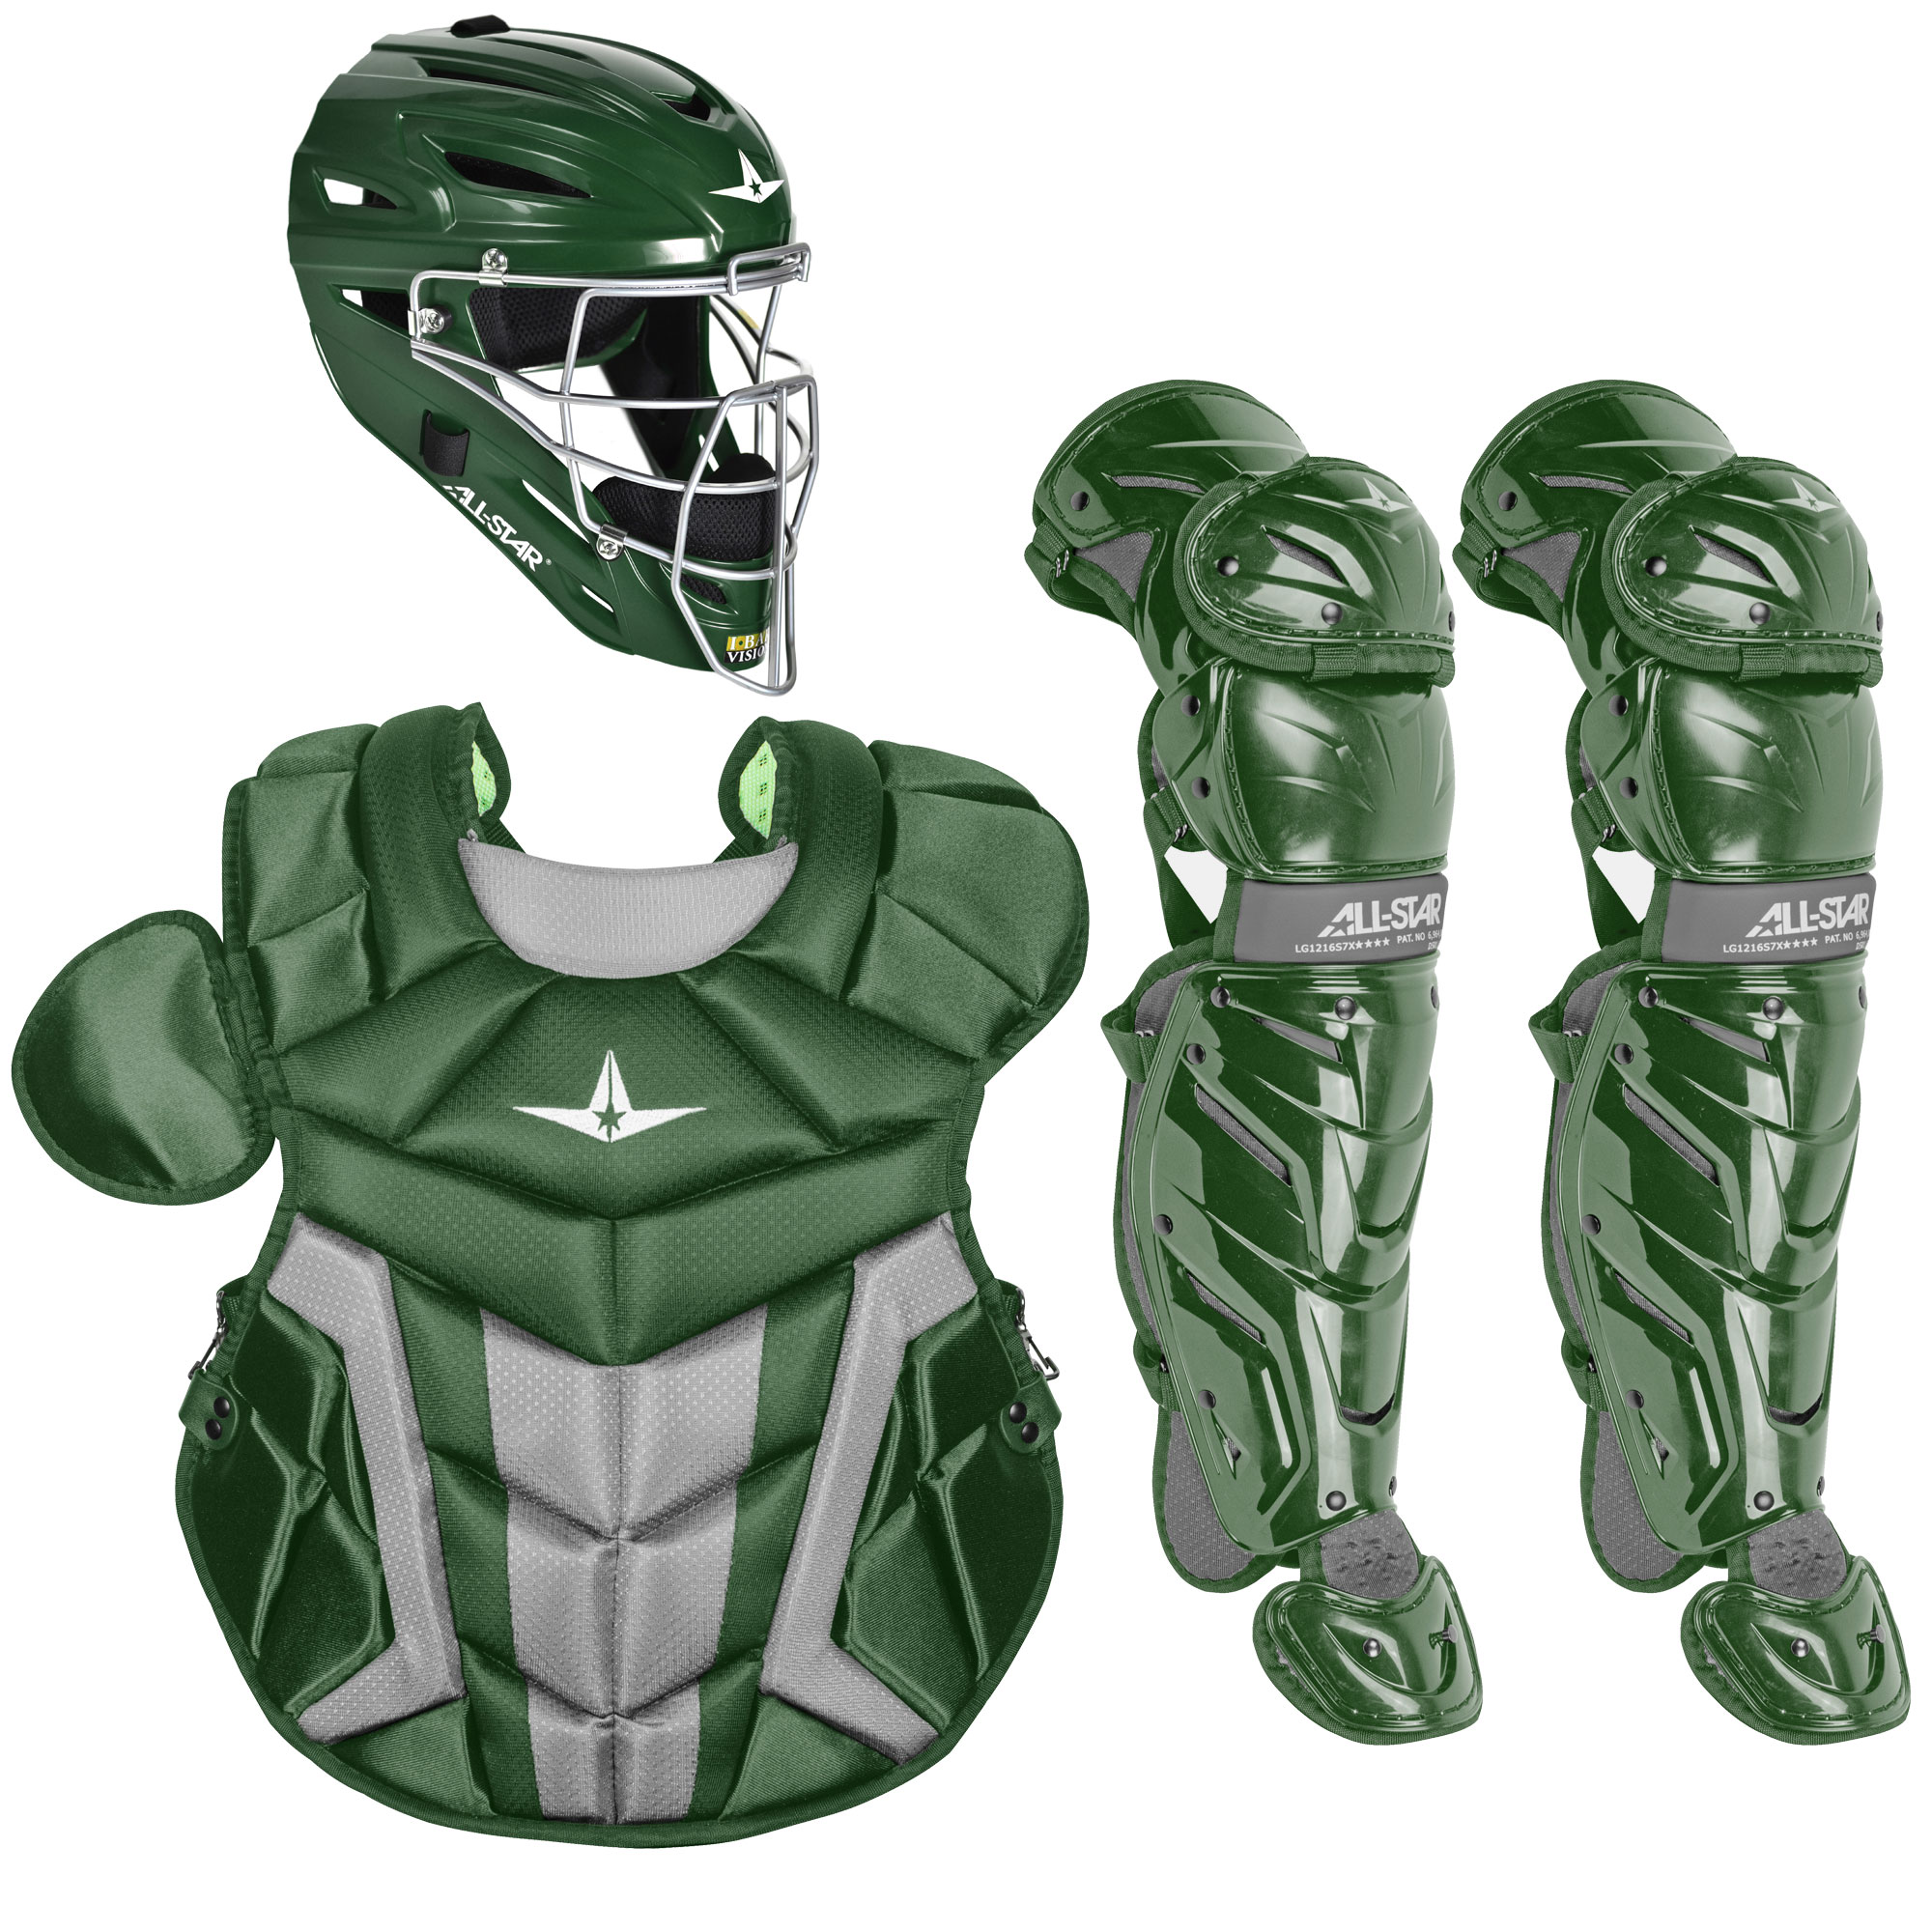 All-Star System7 Axis Pro Youth Baseball Catcher's Package